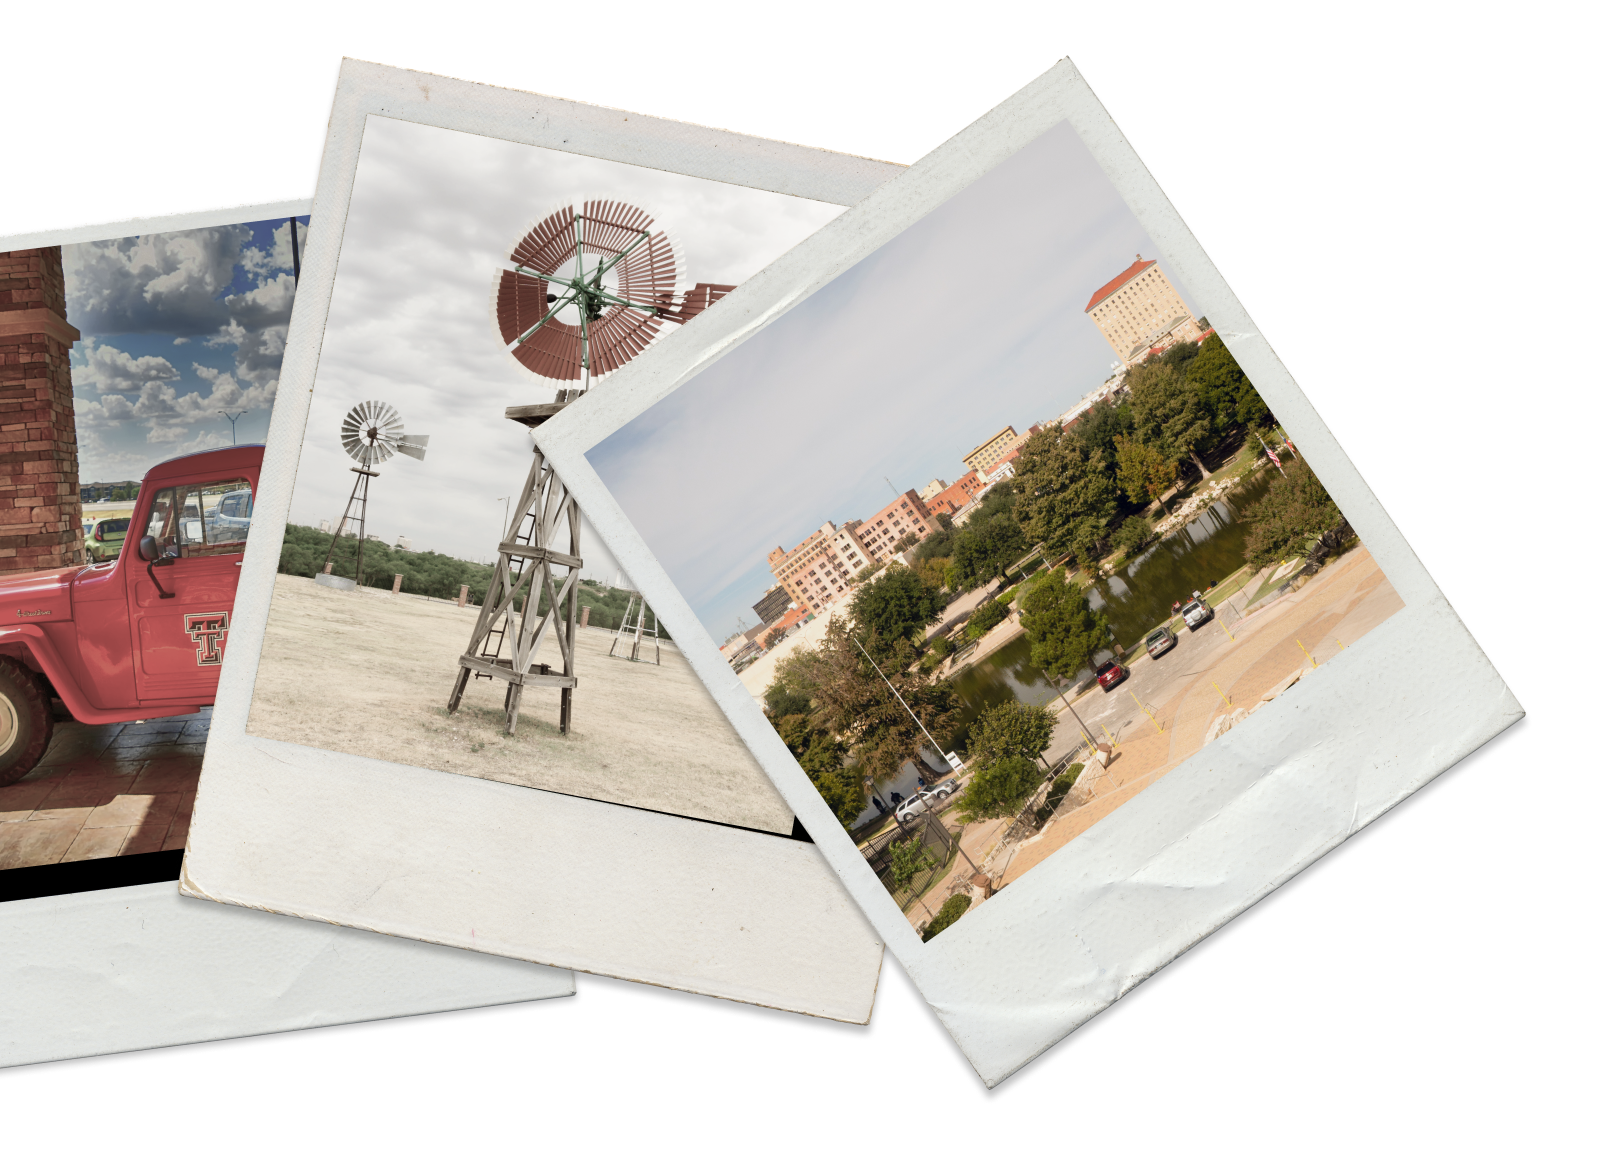 About the Downtown Lbk Project Images